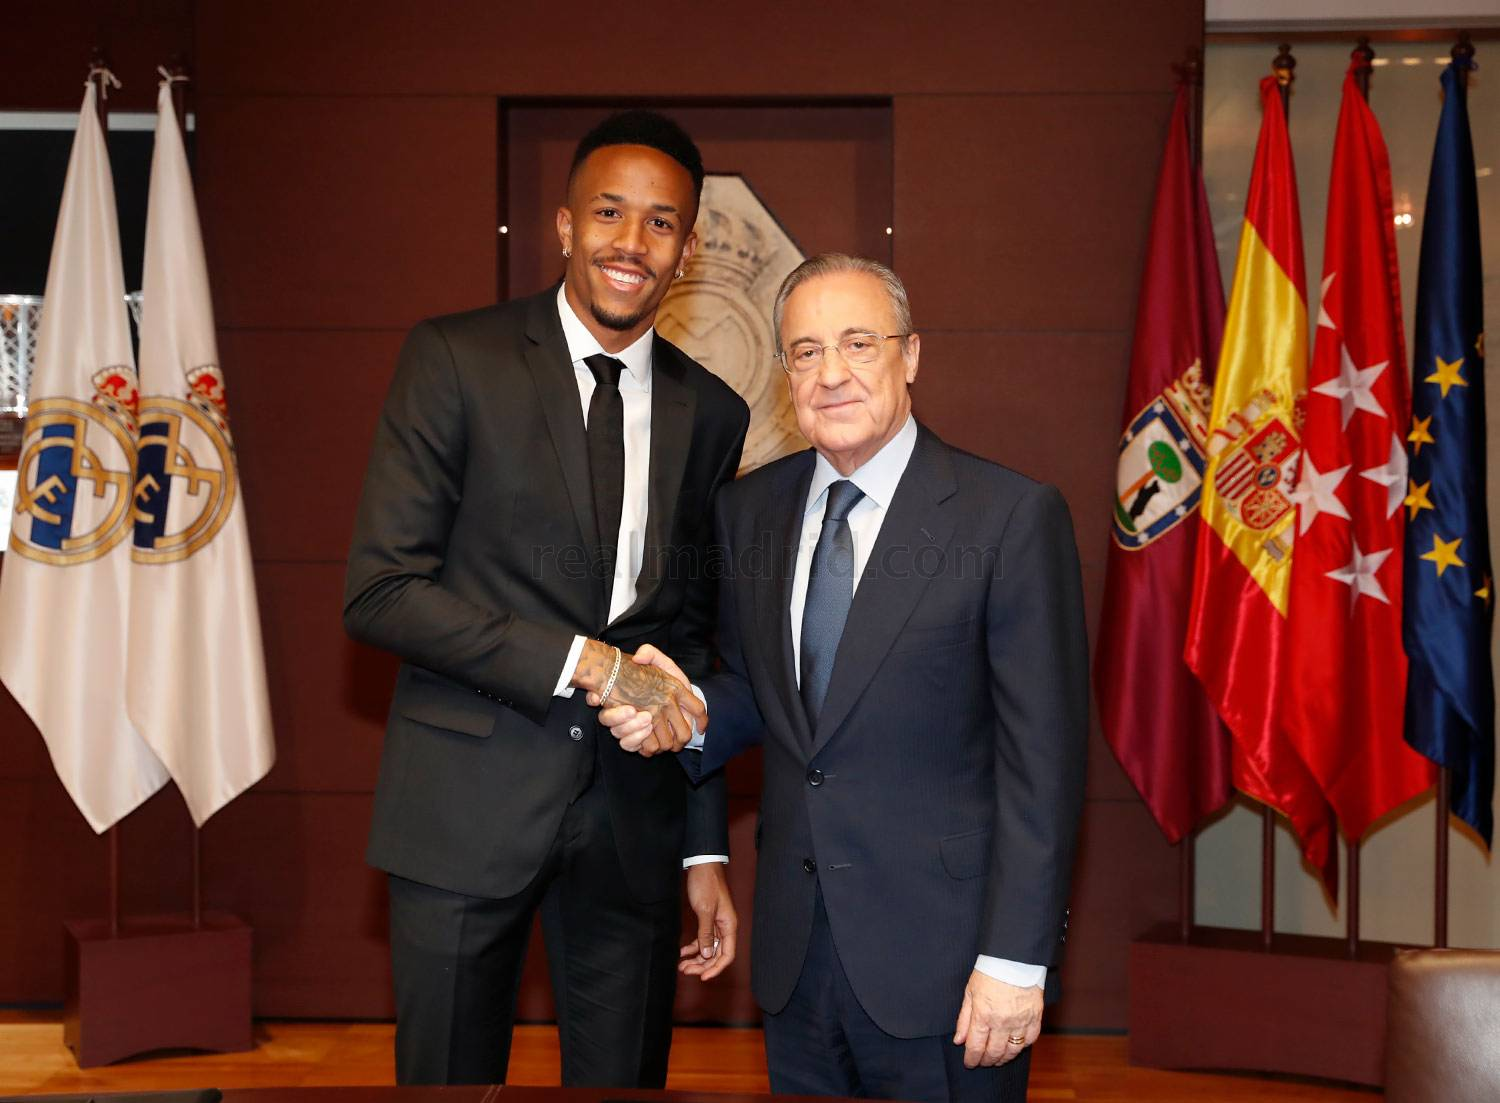 ¿Cuánto mide Eder Militao? - Real height _pca9493_20190710014041